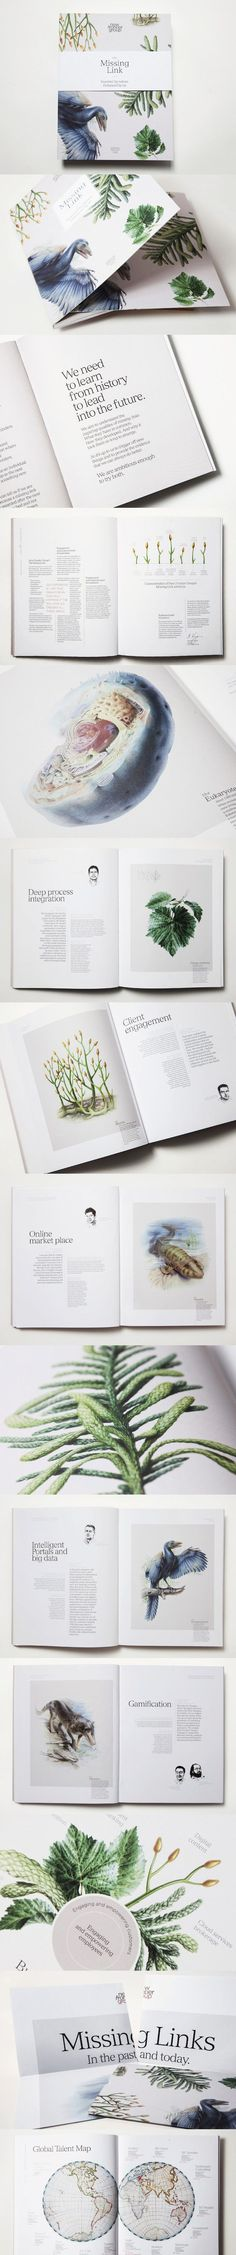 """The Missing Link"" annnual report for New Frontier Group by This is Paper, featuring prehistoric flora & fauna illustrations. http://thisispaper.com/moodley-brand-identity-The-Missing-Link Uploaded by user"